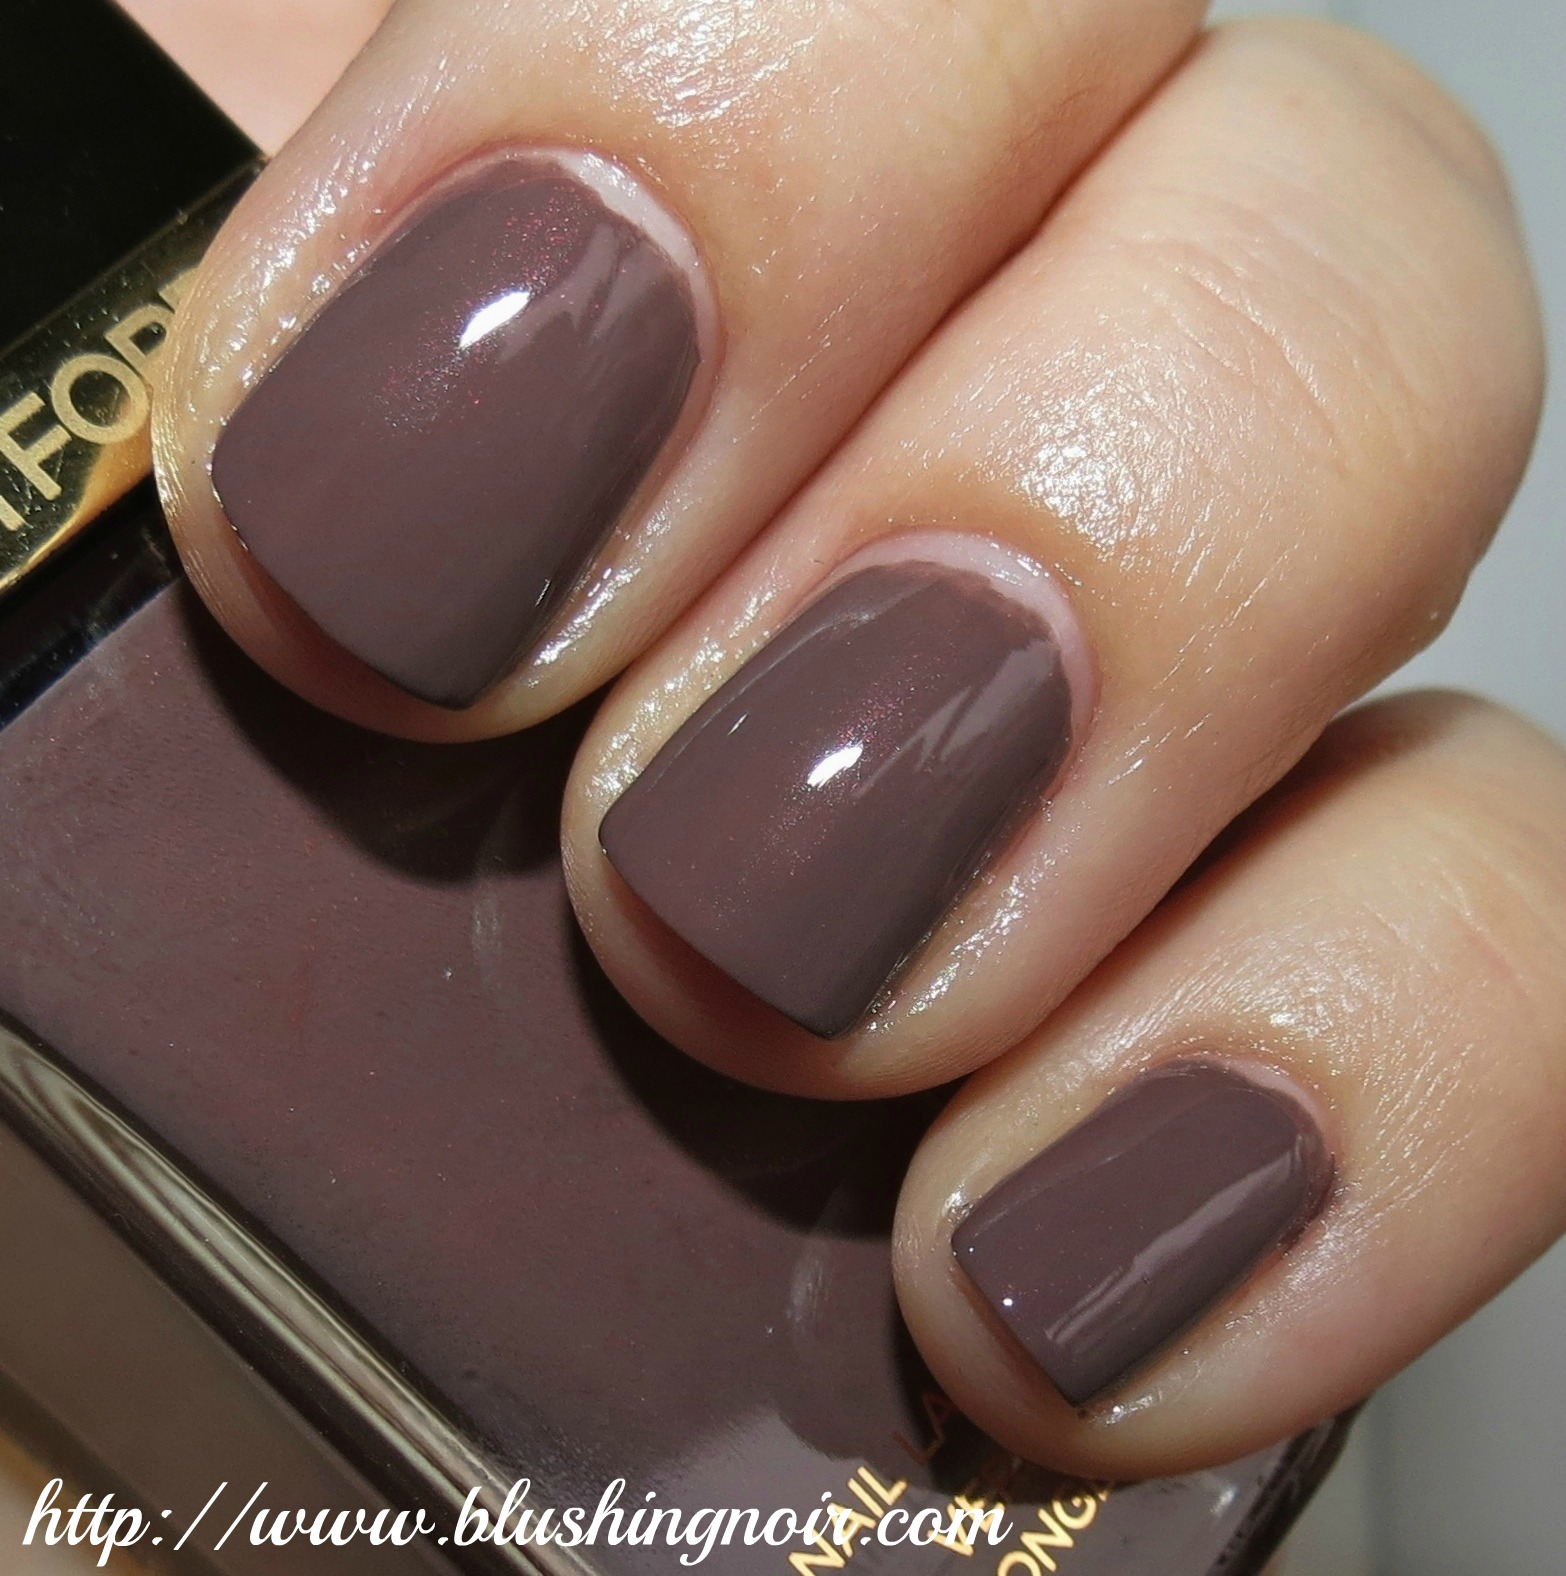 Tom Ford Black Sugar Nail Lacquer Swatches & Review - Blushing Noir